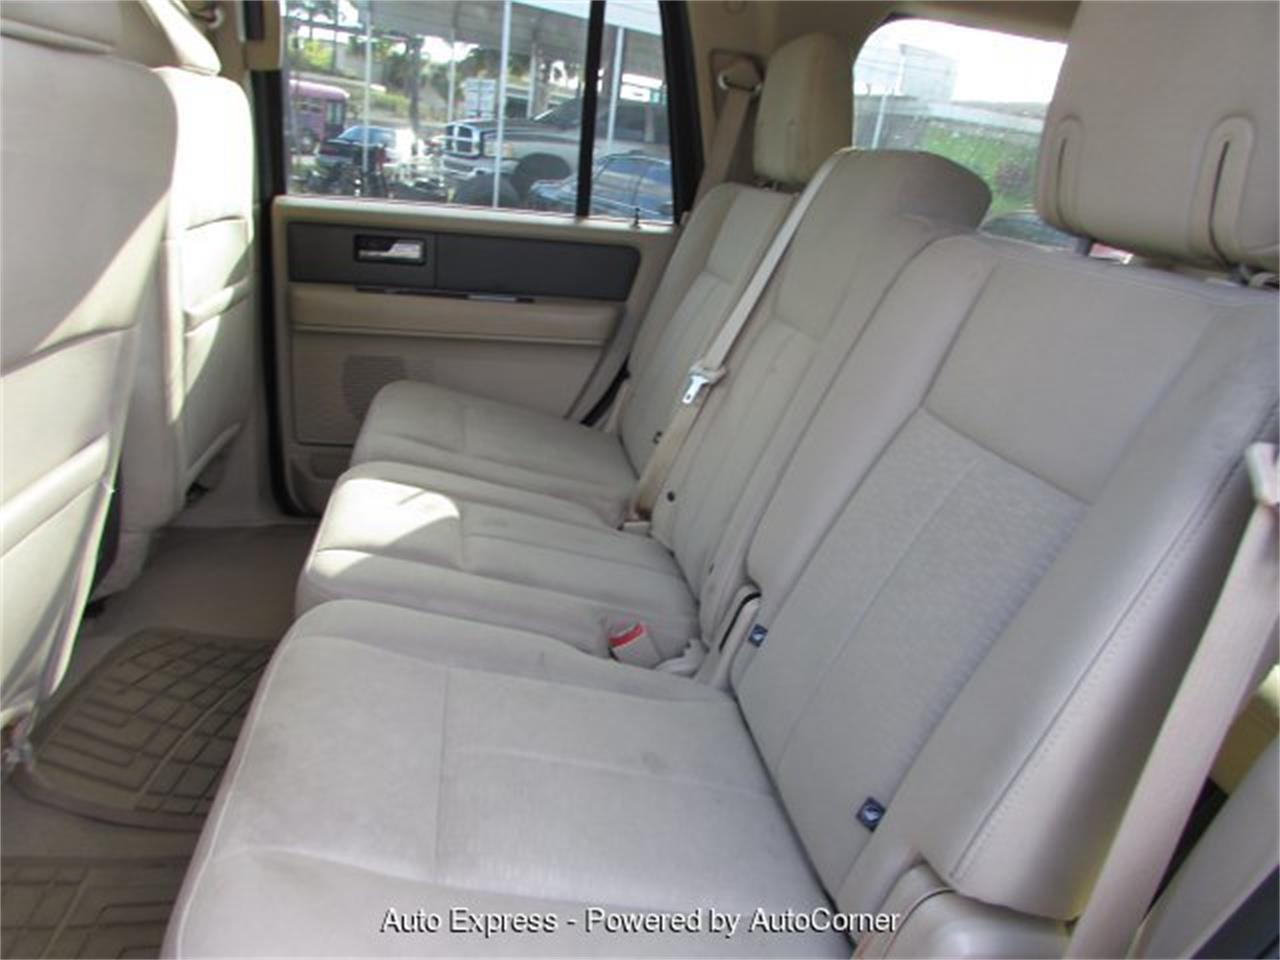 2008 Ford Expedition for sale in Orlando, FL – photo 16